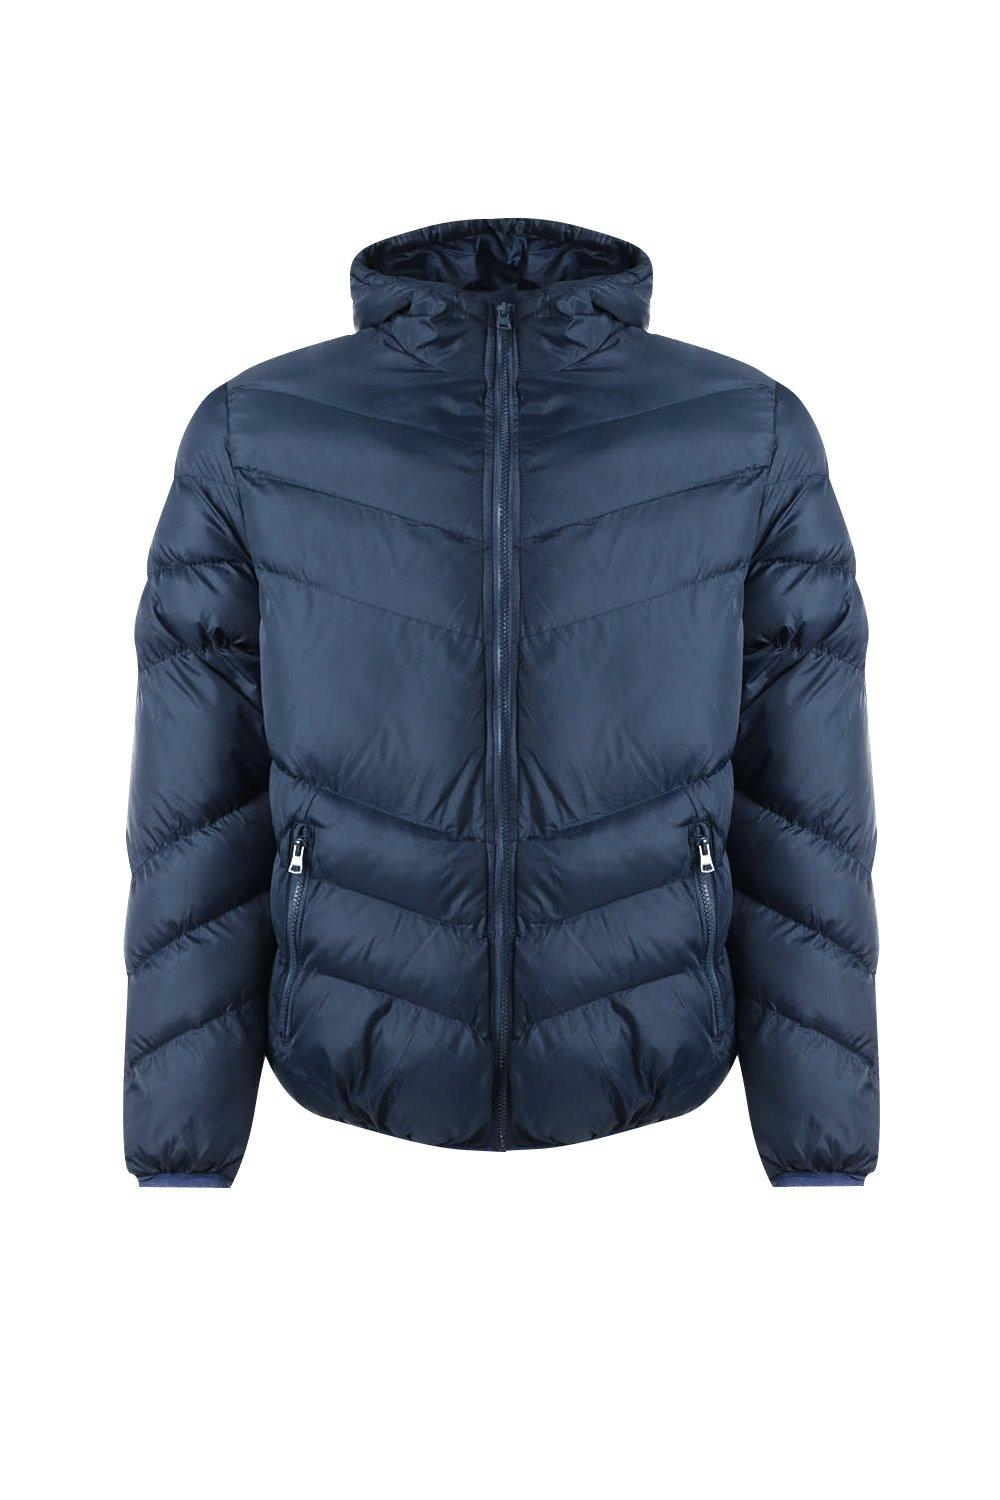 boohooMAN navy Hooded Quilted Jacket